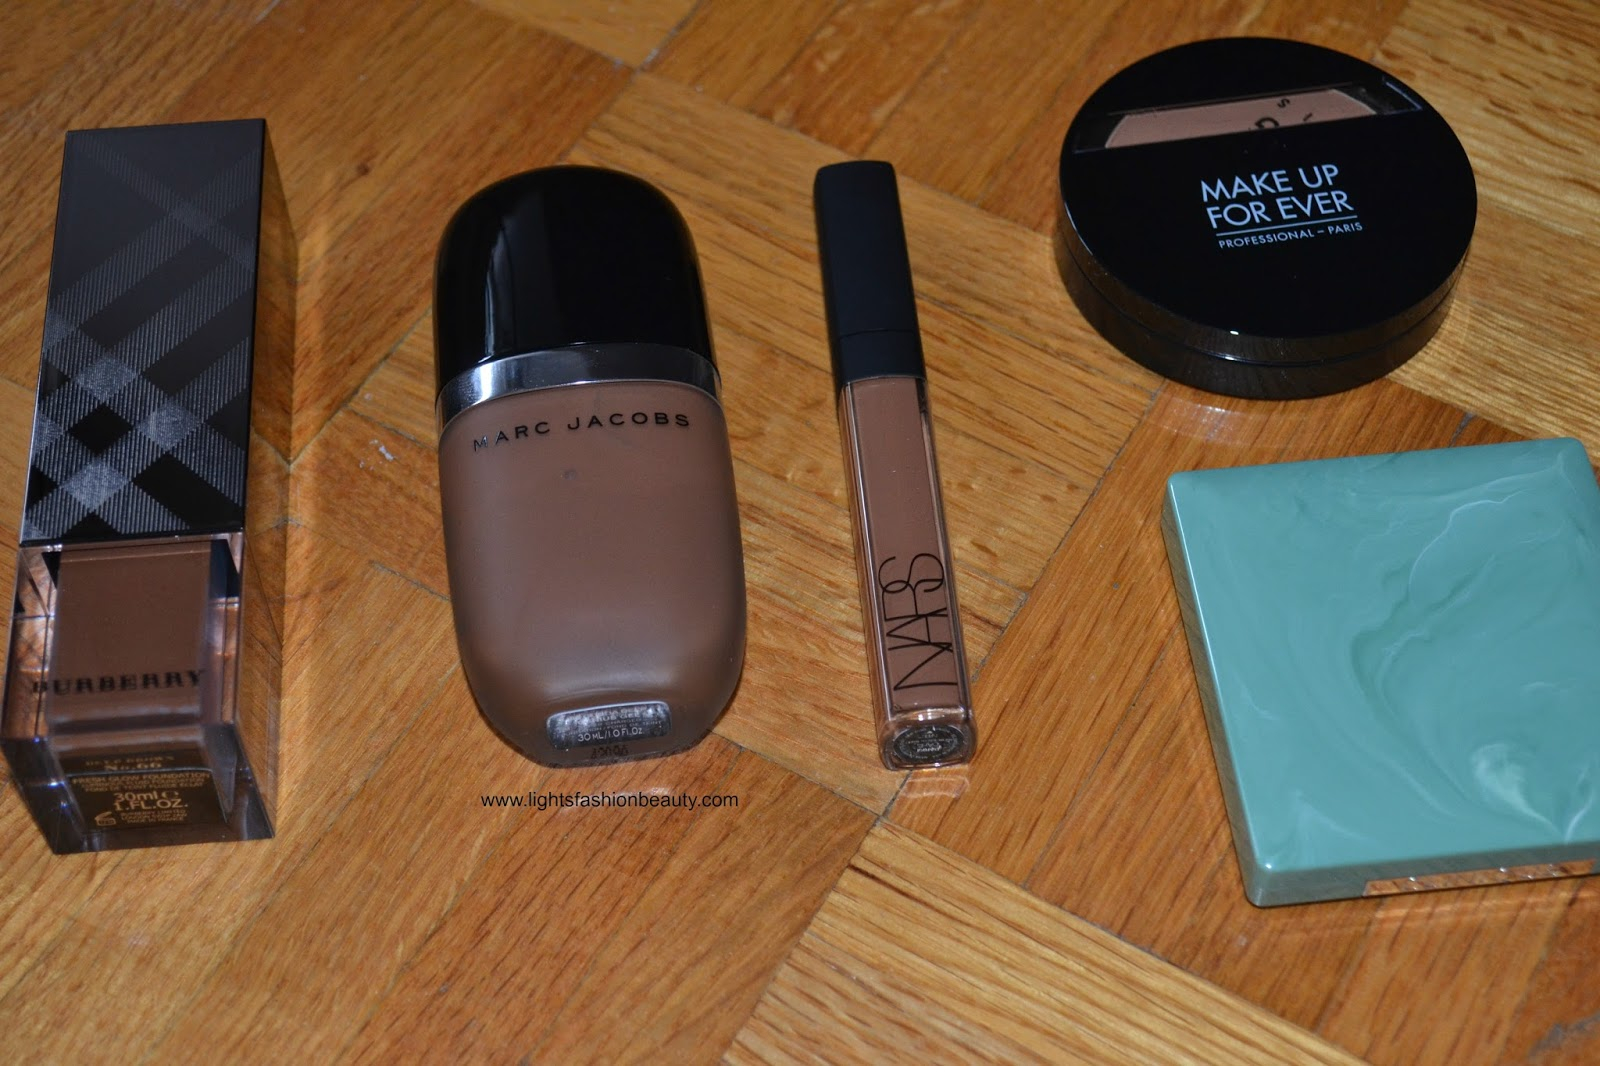 Sephora VIB Haul 2015, sephora makeup haul, marc jacob genius foundation, burberry fresh glow foundation foundation, becca primer, nars radiant creamy concealer, lightsfashionbeauty, brown beauty blogger